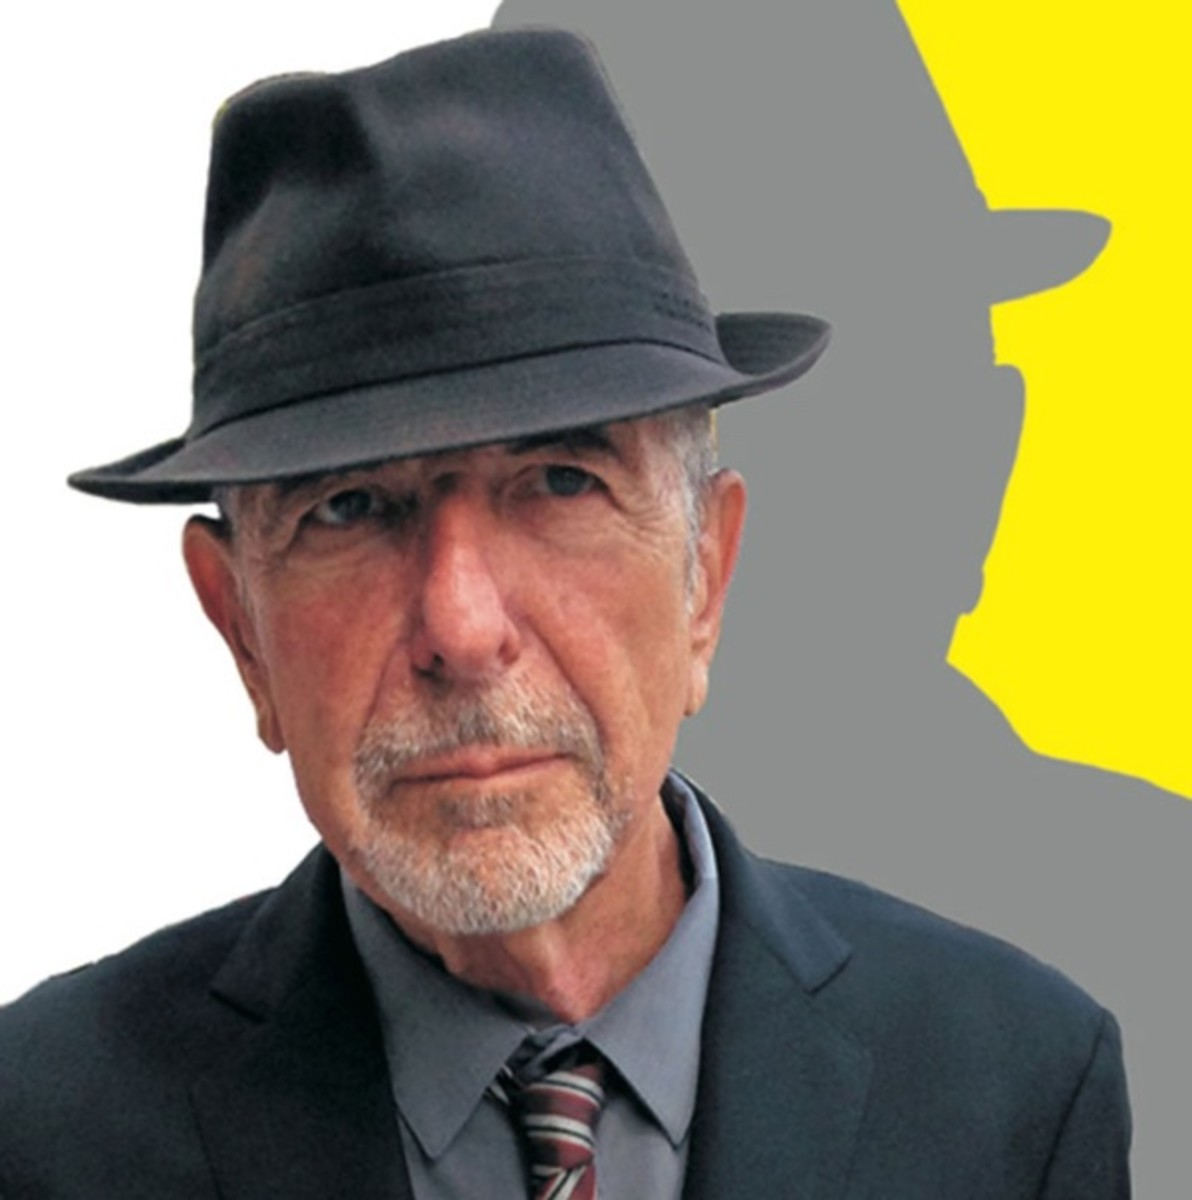 Leonard cohen different positions for sexual health